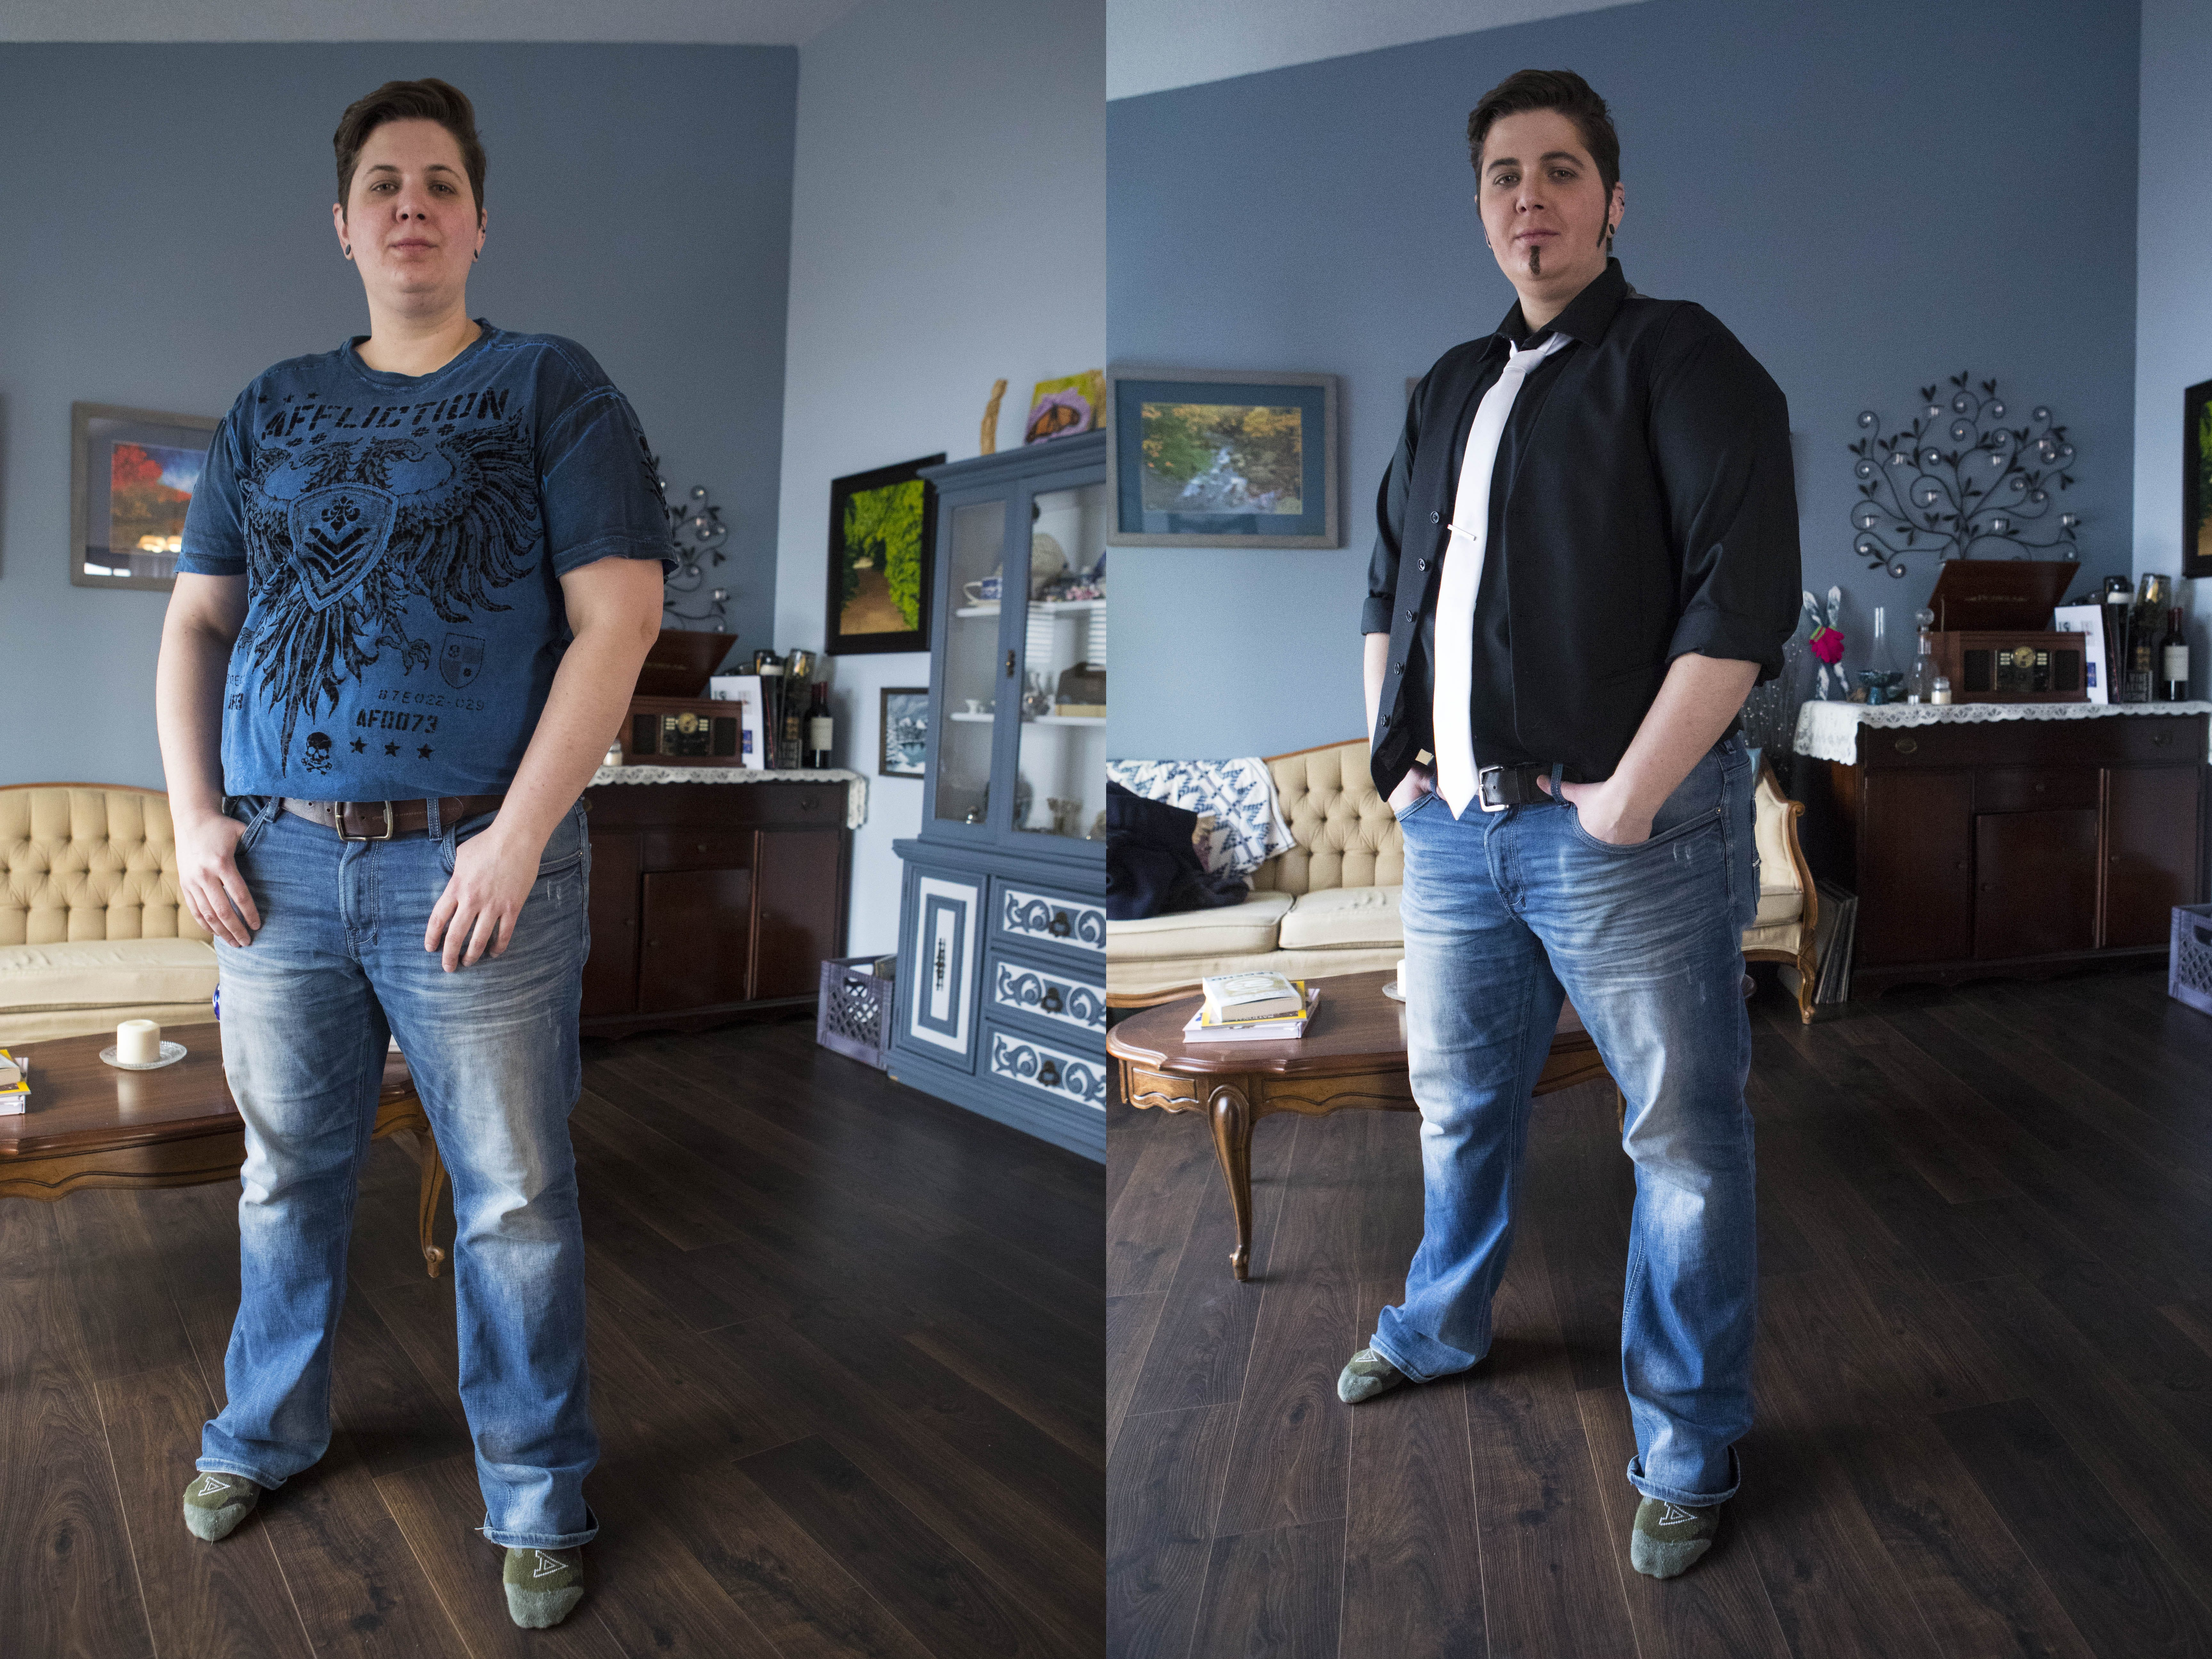 Katie Morgan (drag name: Alex Feeliner) poses in a before and after photo in Sioux Falls, S.D., Saturday, Jan. 26, 2019.